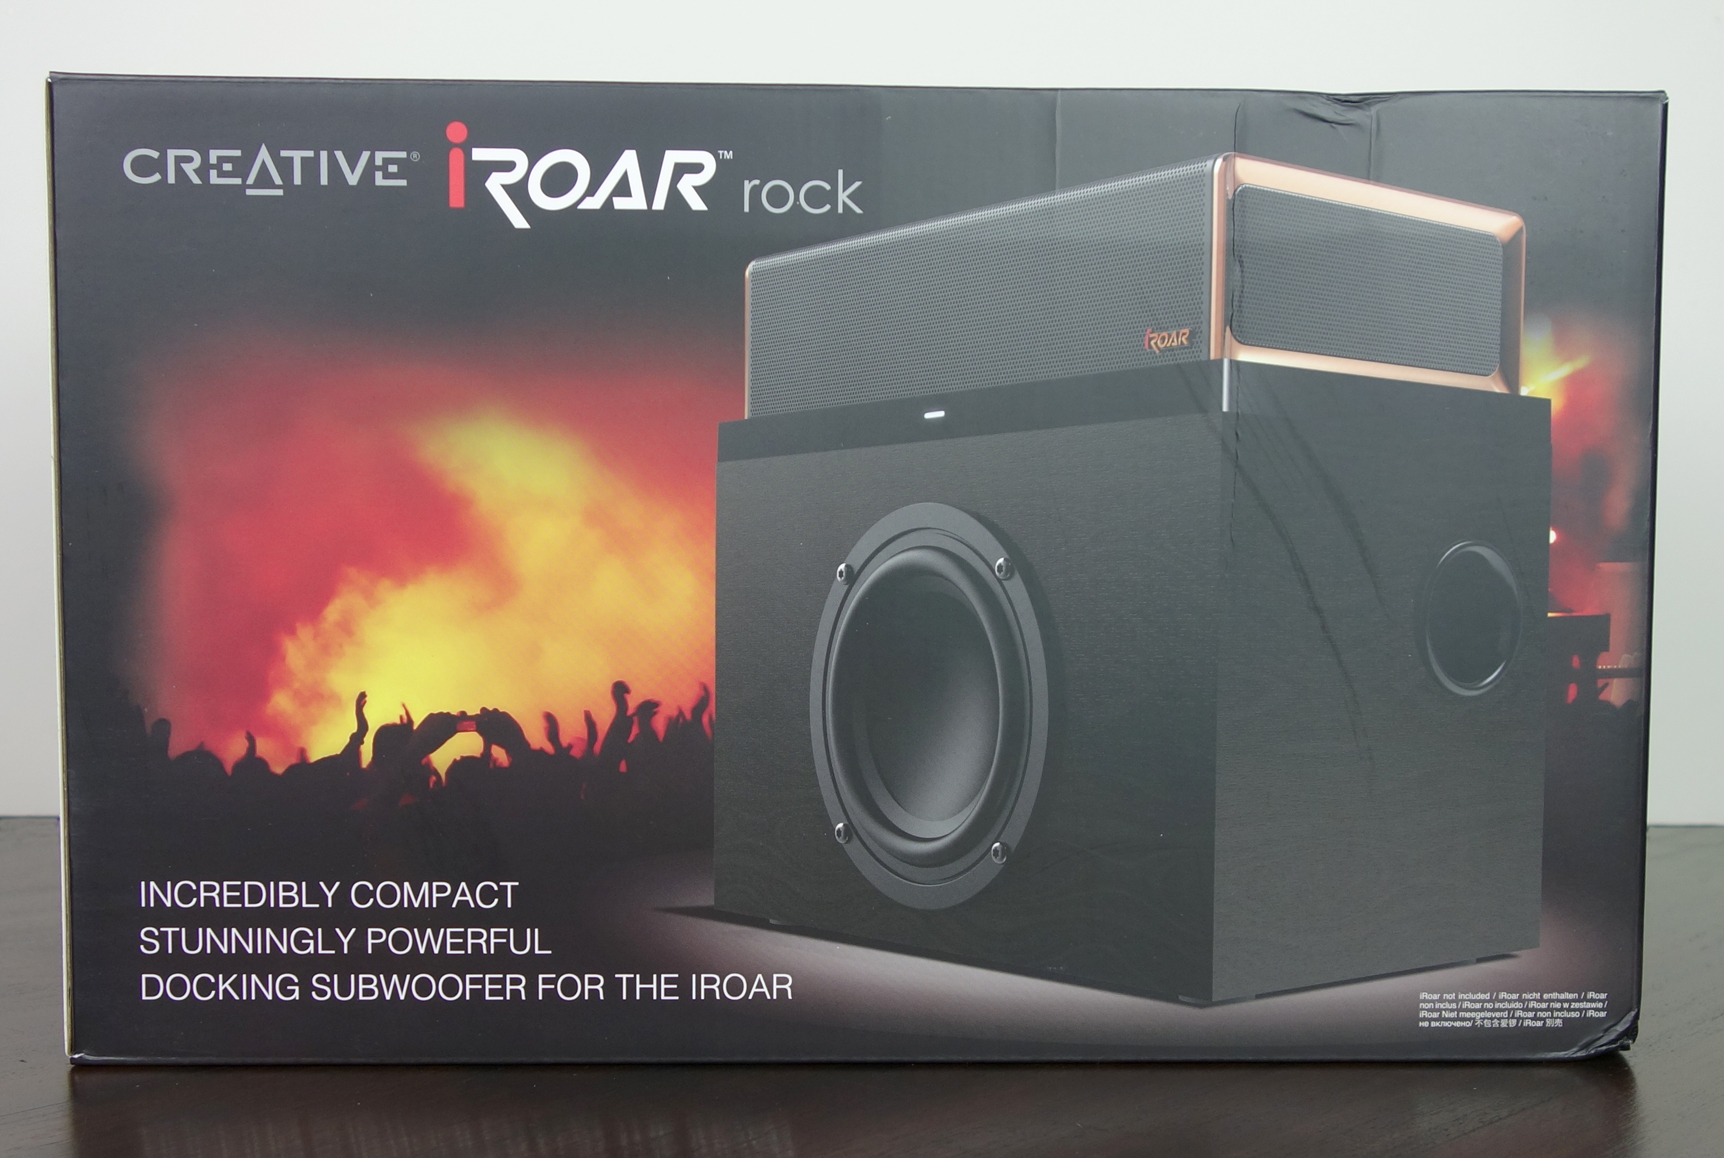 Creative iRoar Rock Docking Subwoofer box